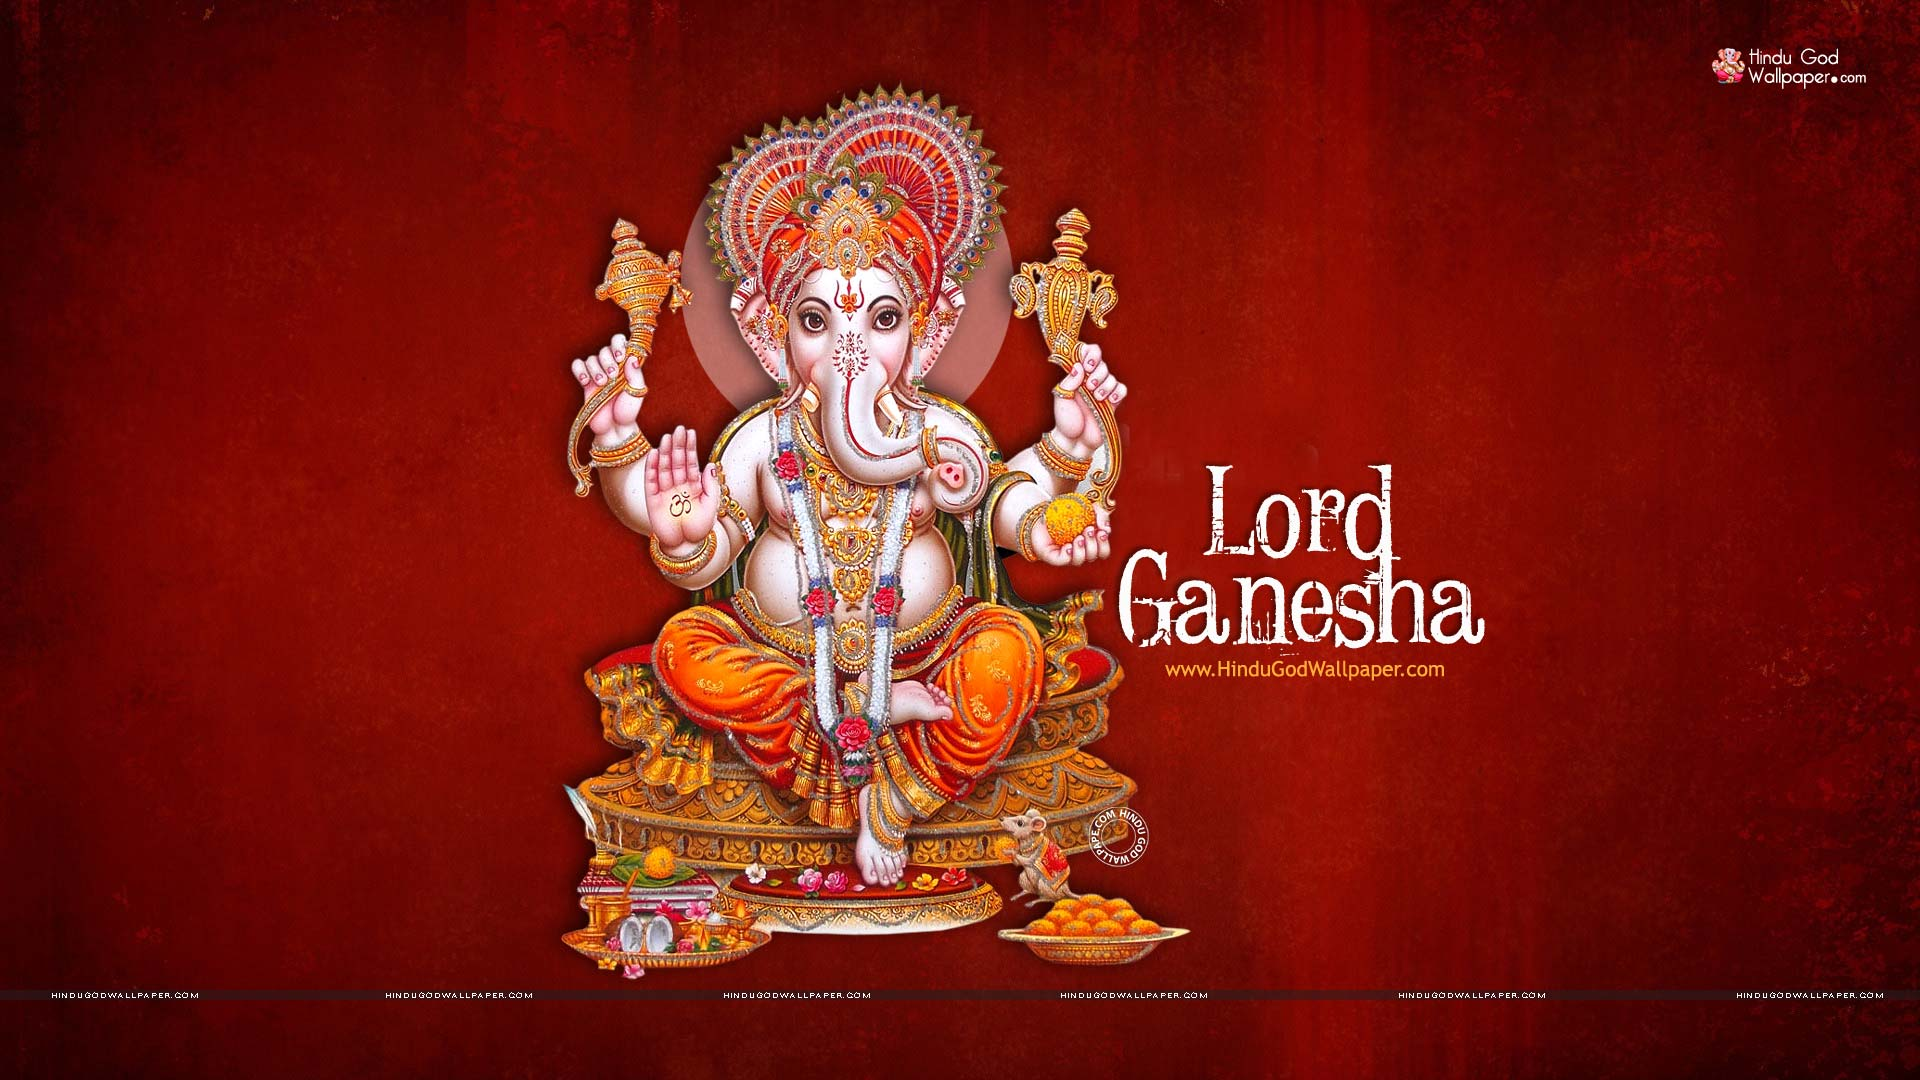 1080p Lord Ganesha Hd Wallpaper Full Size 1920x1080 Download